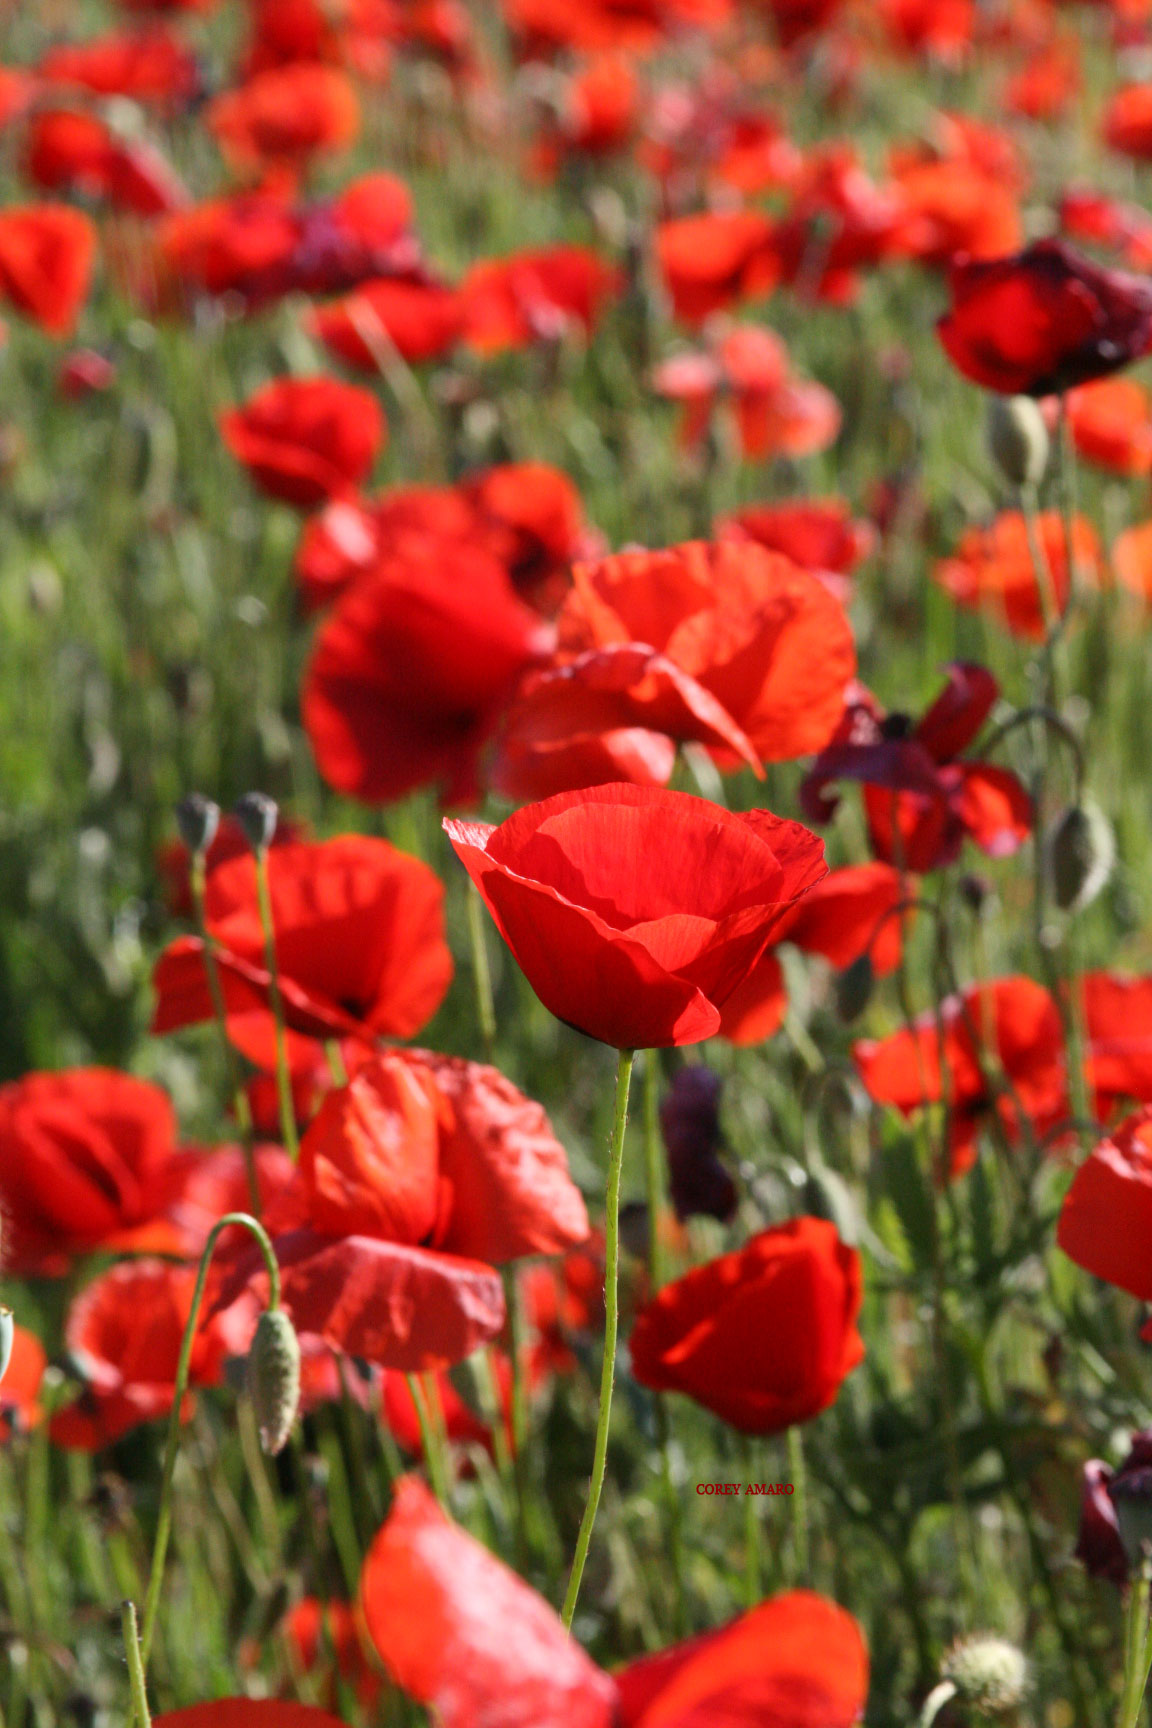 tongue in cheek in search of red poppies